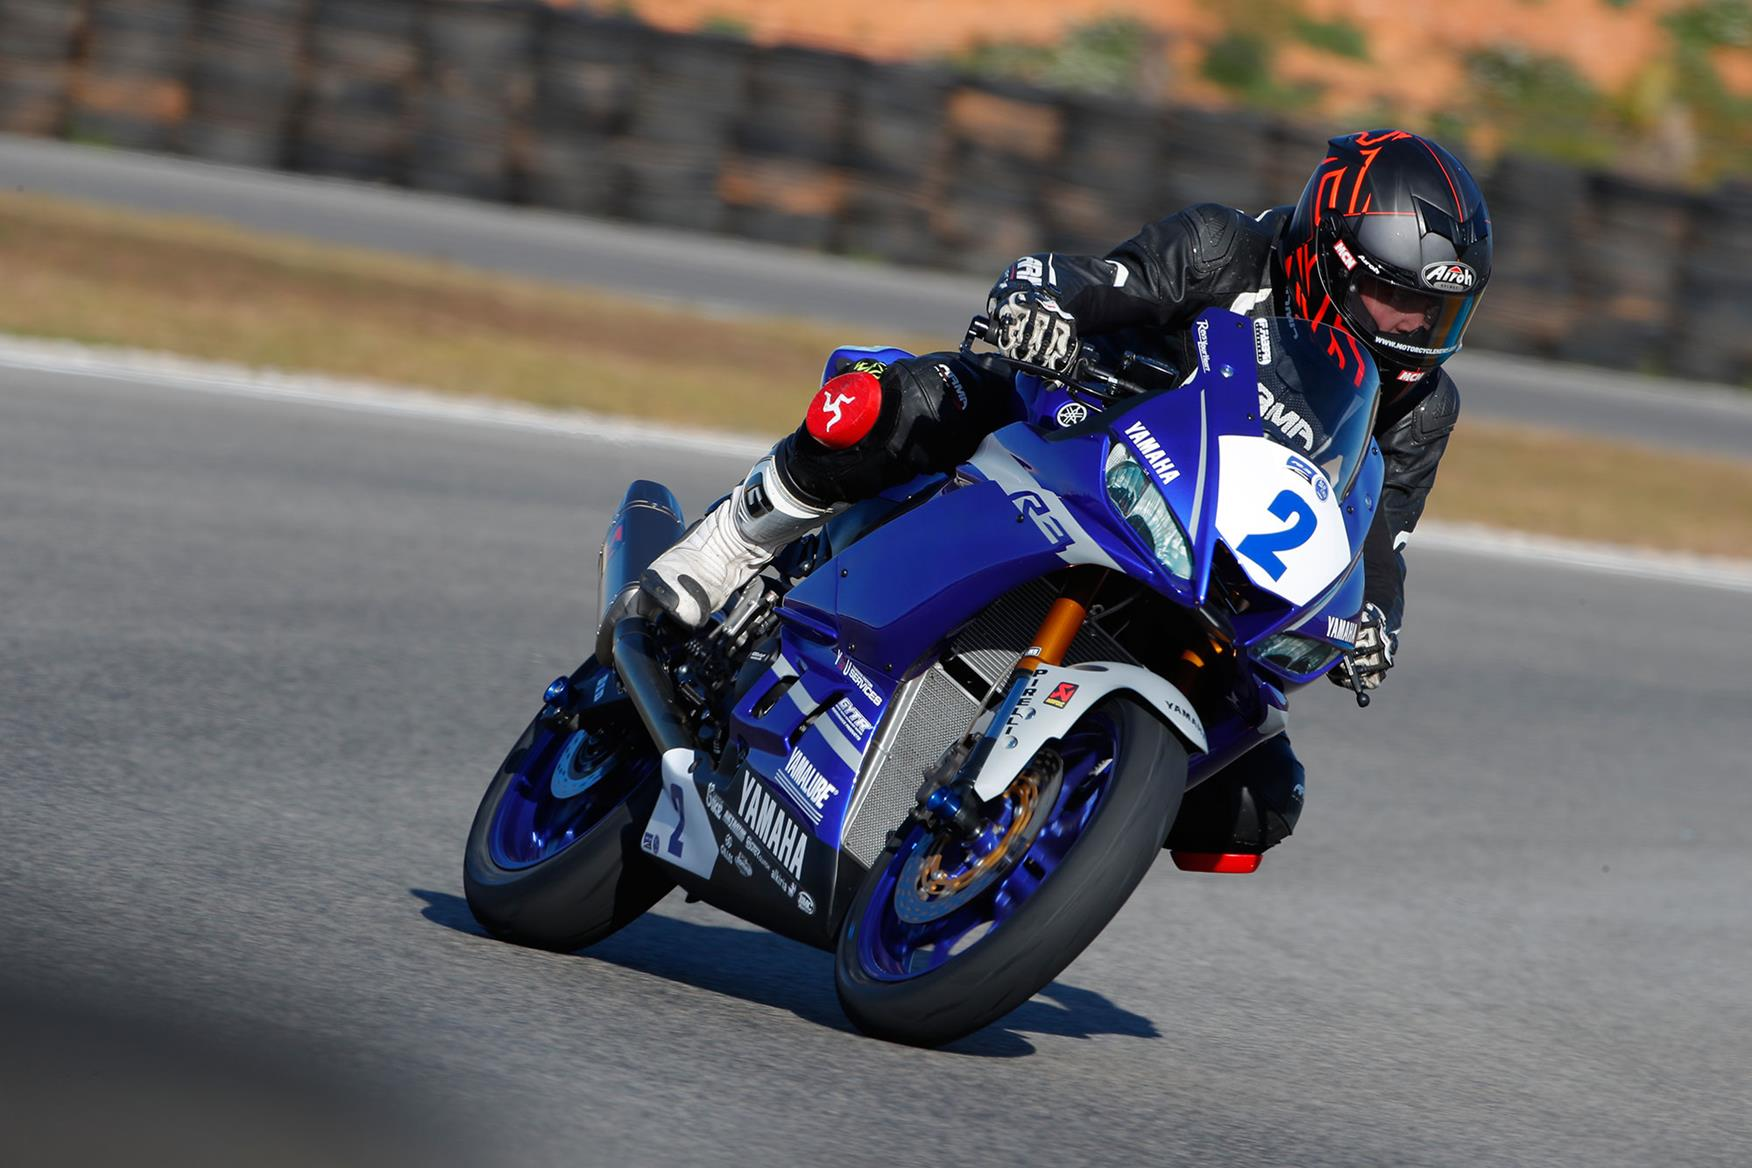 Cornering on the GYTR Yamaha R3